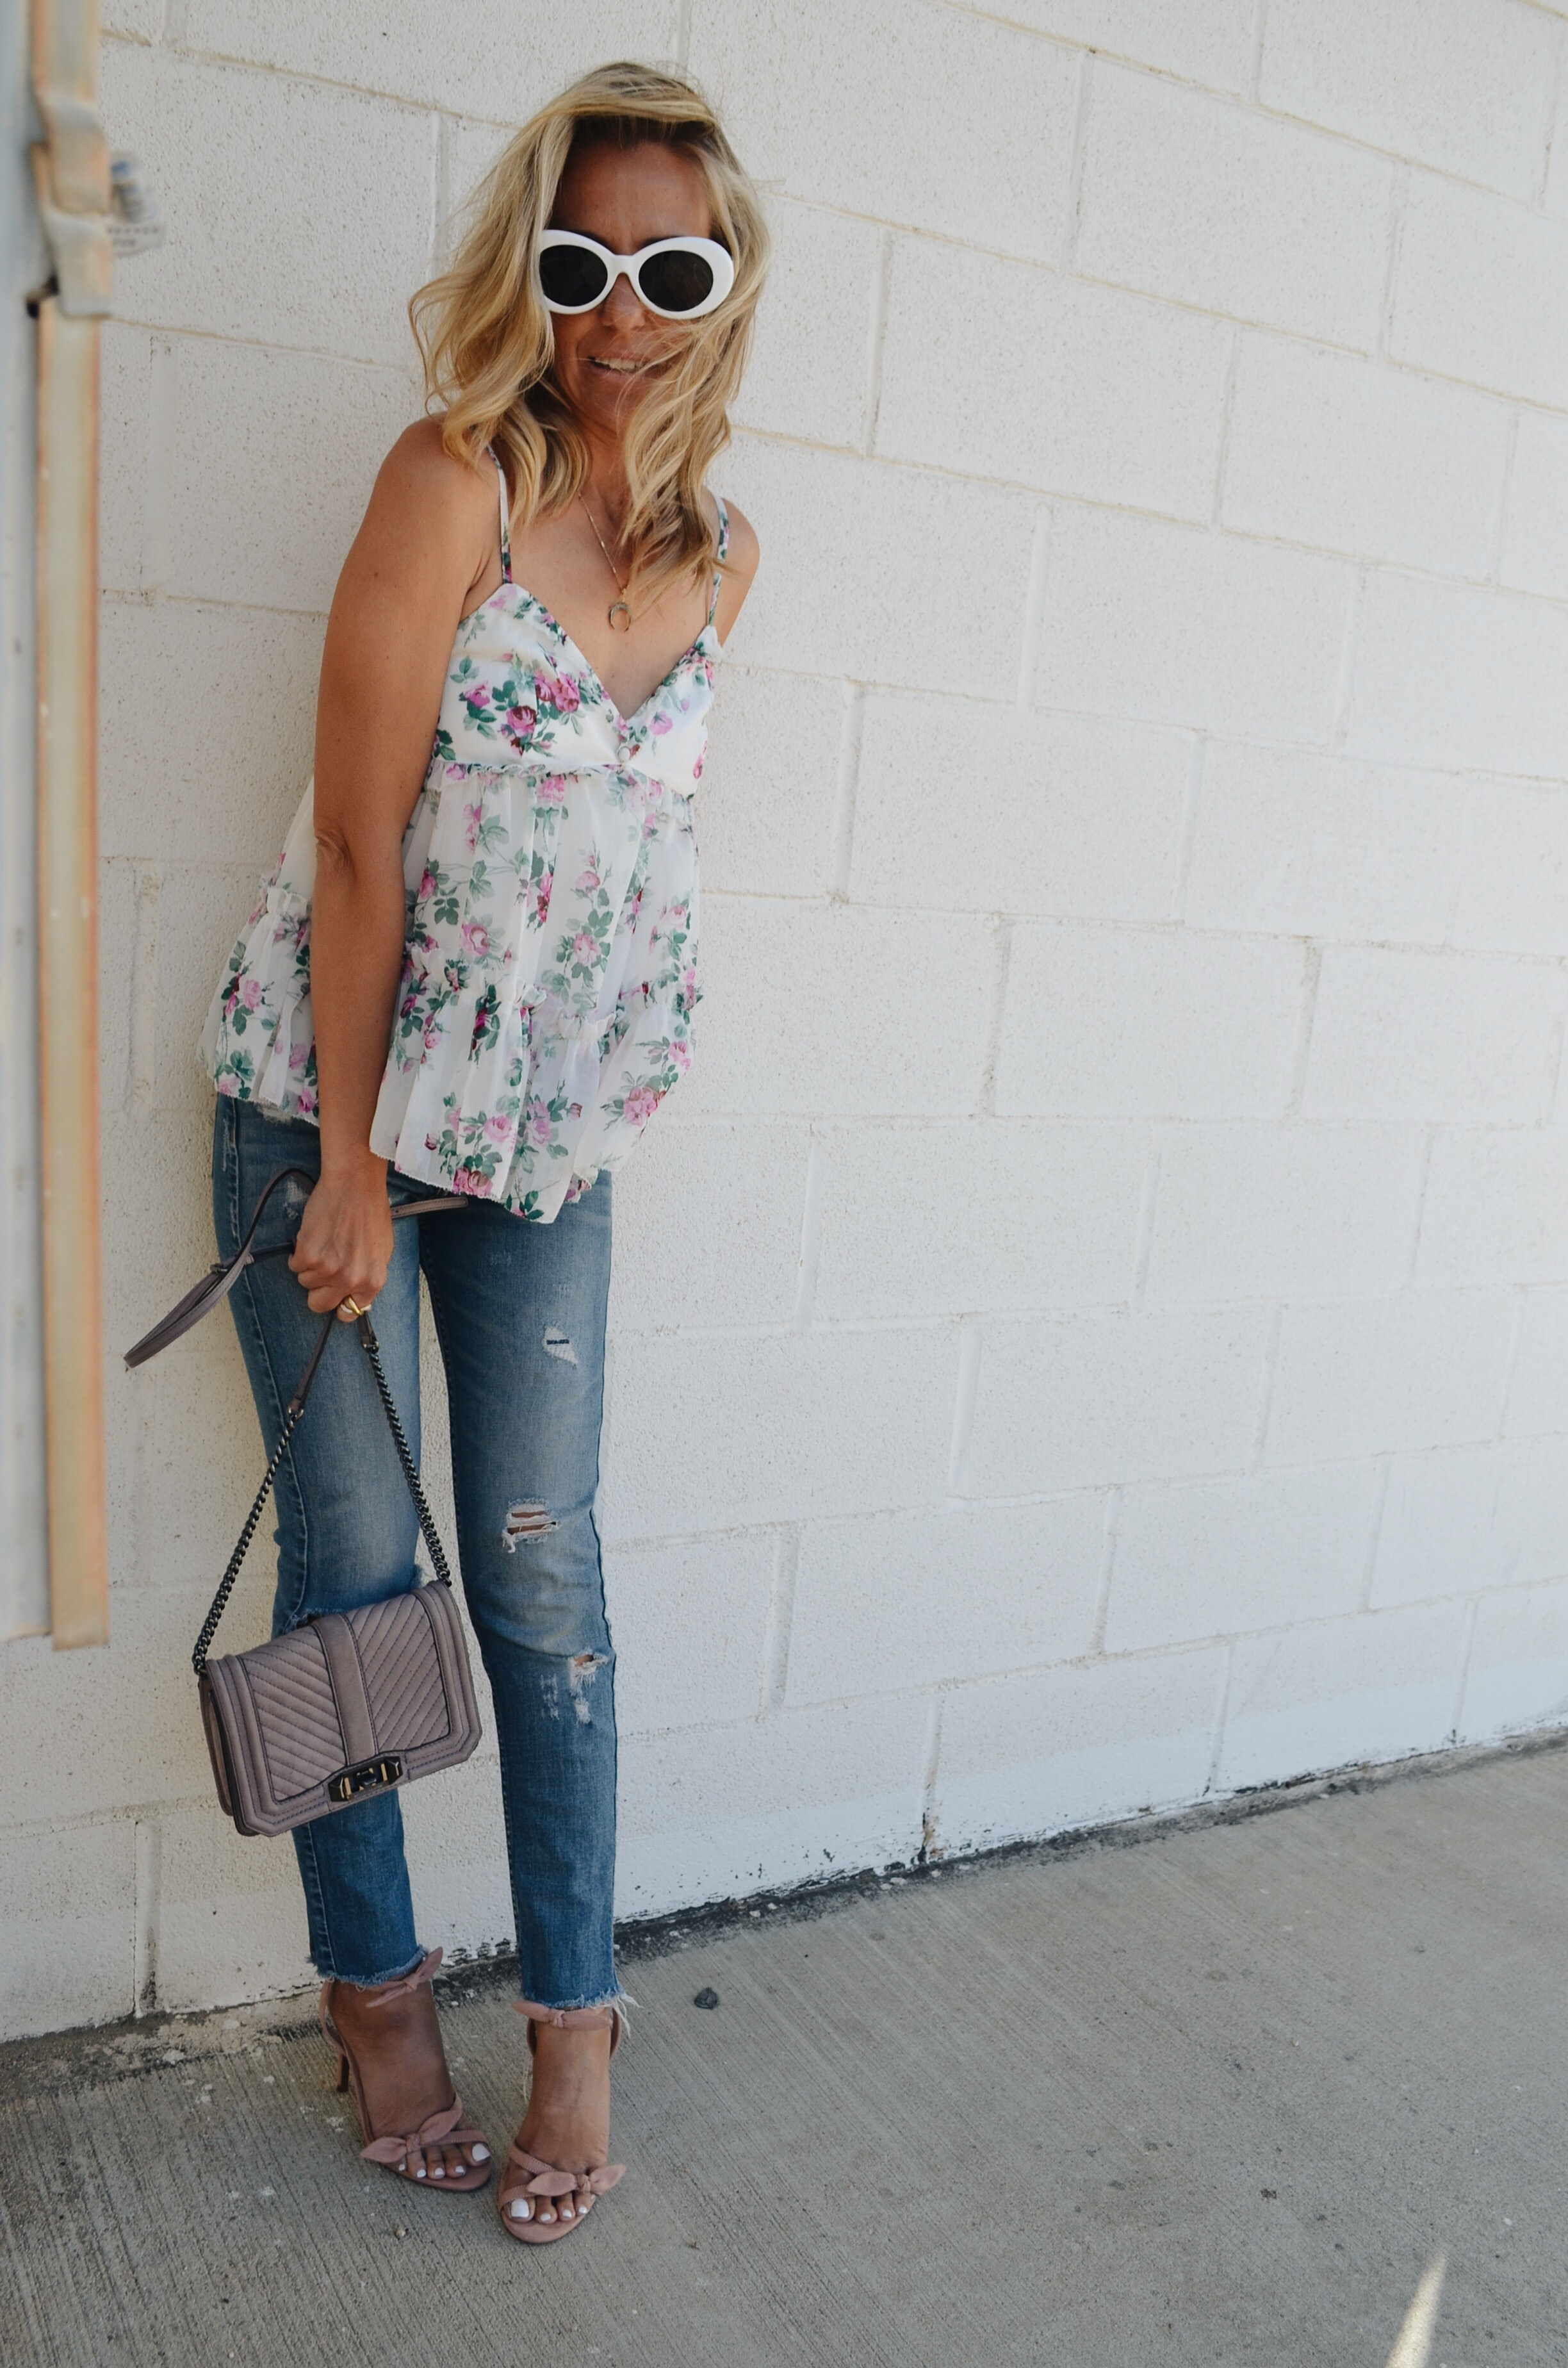 HOW TO DRESS UP DISTRESSED DENIM- Jaclyn De Leon Style + FLORAL RUFFLE TOP + A&F + DESTROYED JEANS +PINK HEELS + TARGET STYLE + SUMMER NIGHT OUTFIT + STREET STYLE + REBECCA MINKOFF HANDBAG + RETRO STYLE SUNGLASSES